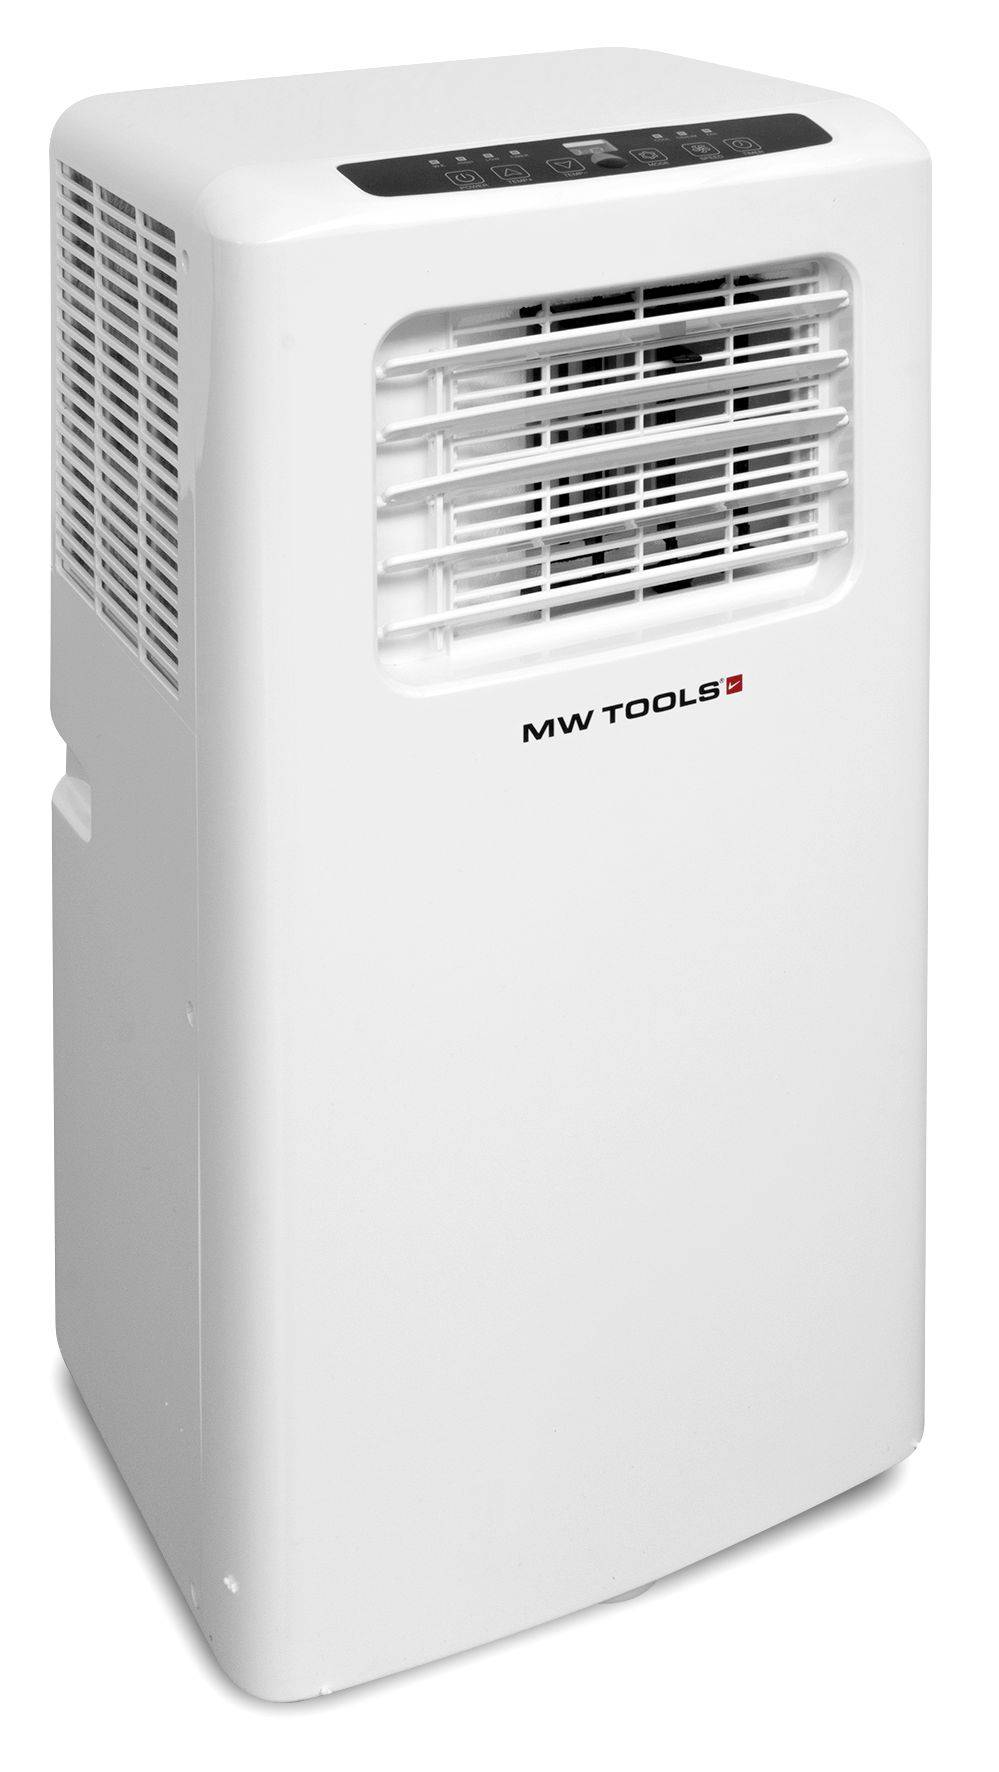 Mw-tools Climatisation mobile 2600 W/h MW-Tools DA900